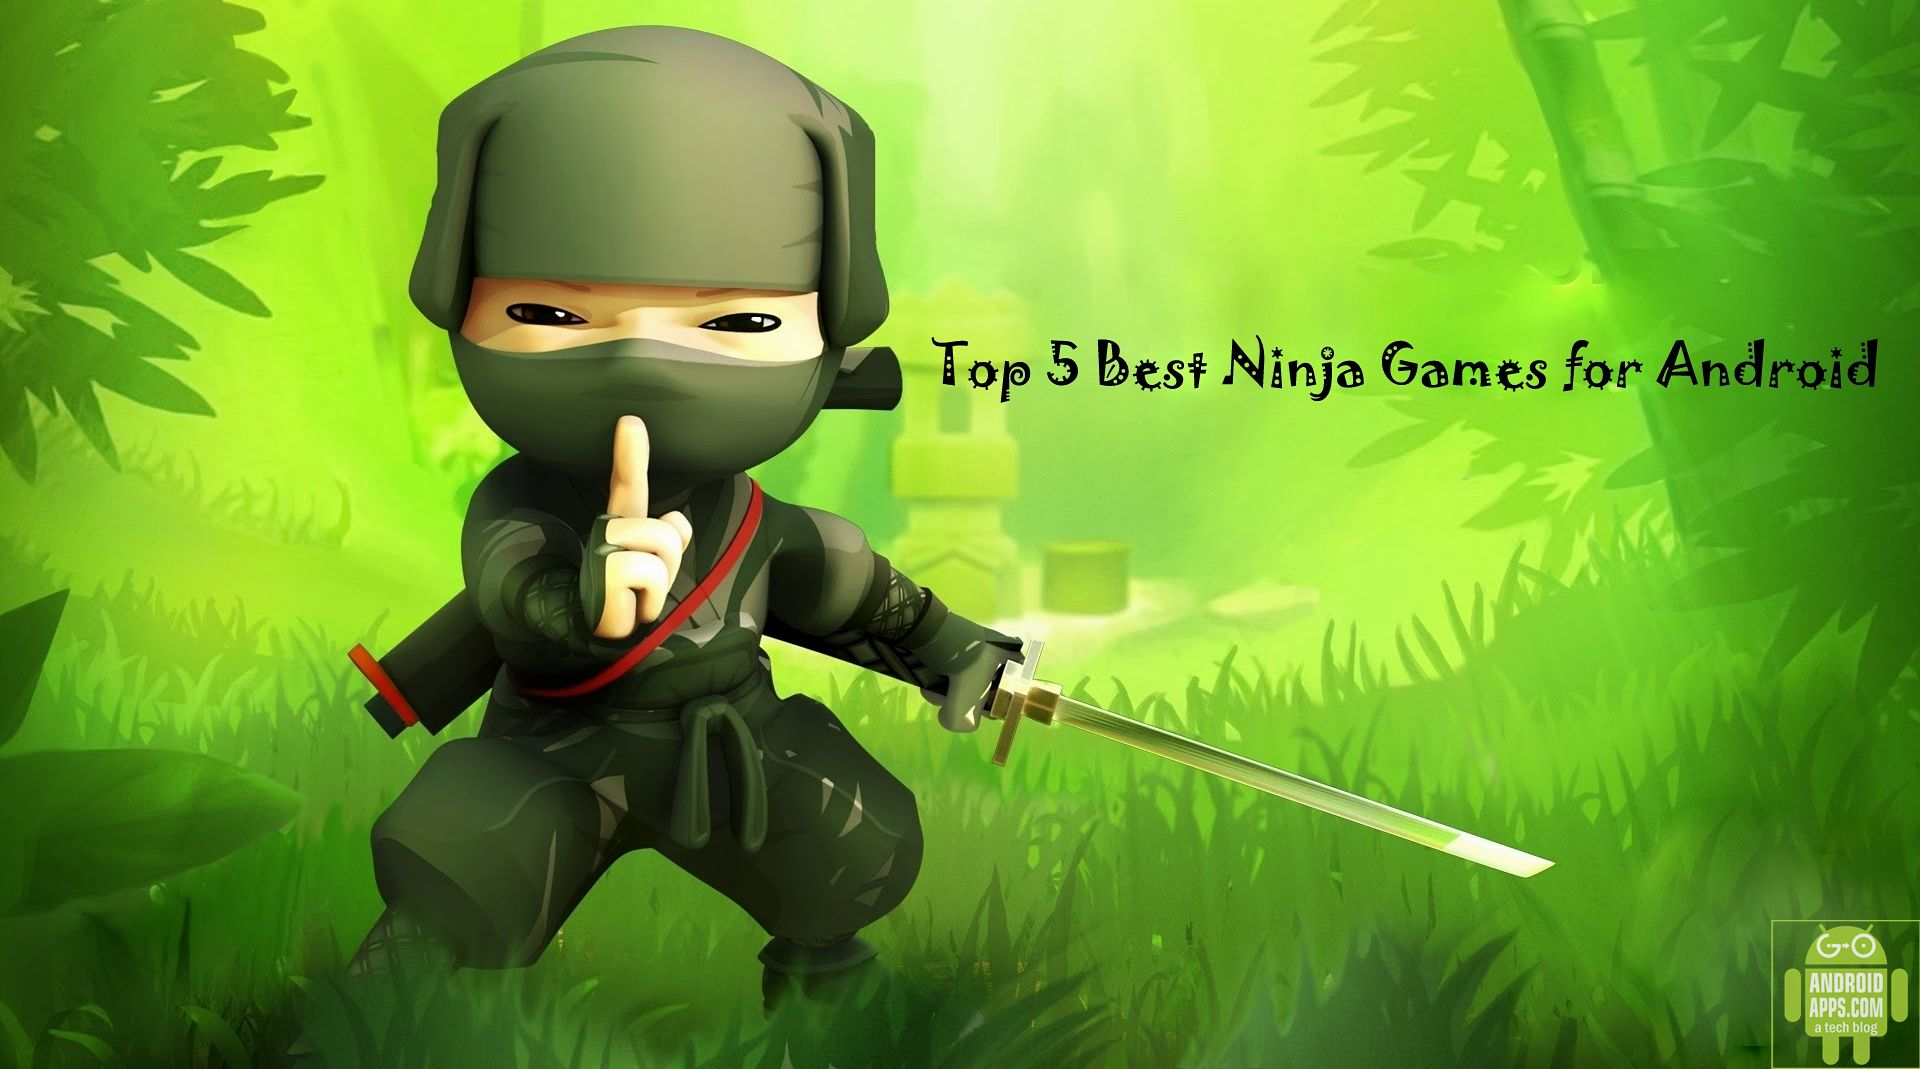 Top 5 Best Ninja Games for Android